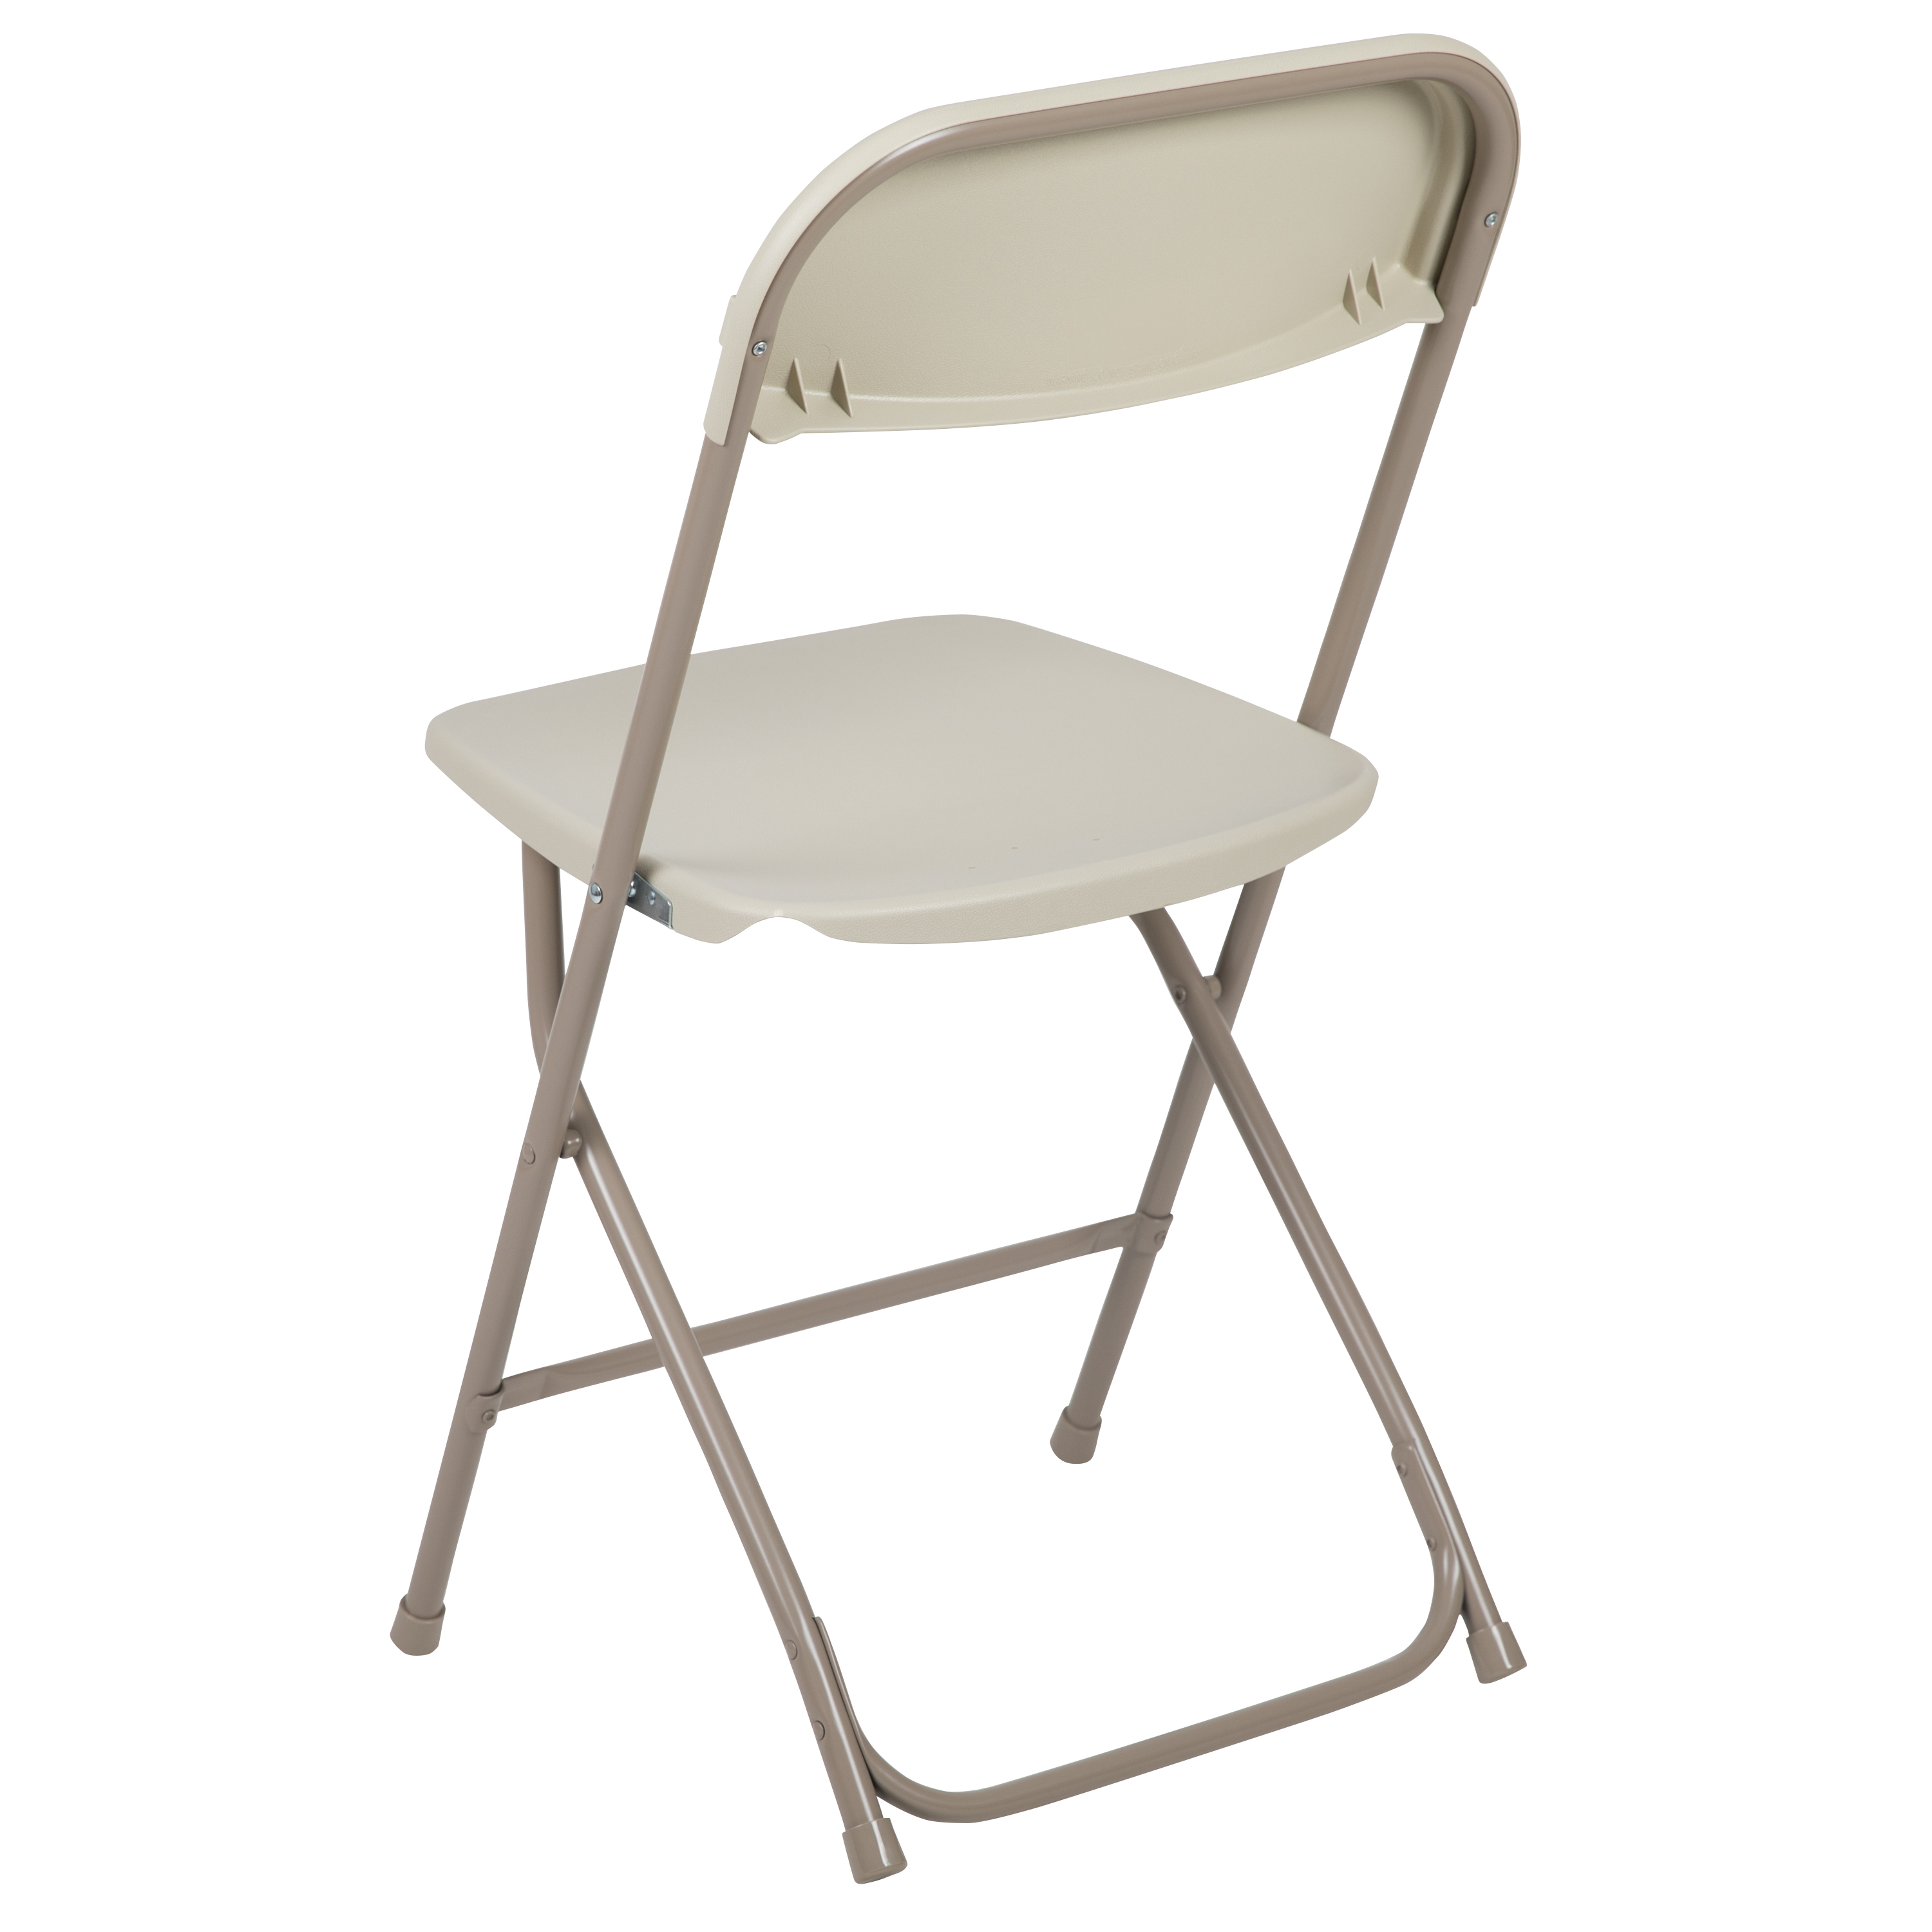 Terrific 10 Pack Commercial Wedding Event Stackable Plastic Folding Chair Ncnpc Chair Design For Home Ncnpcorg